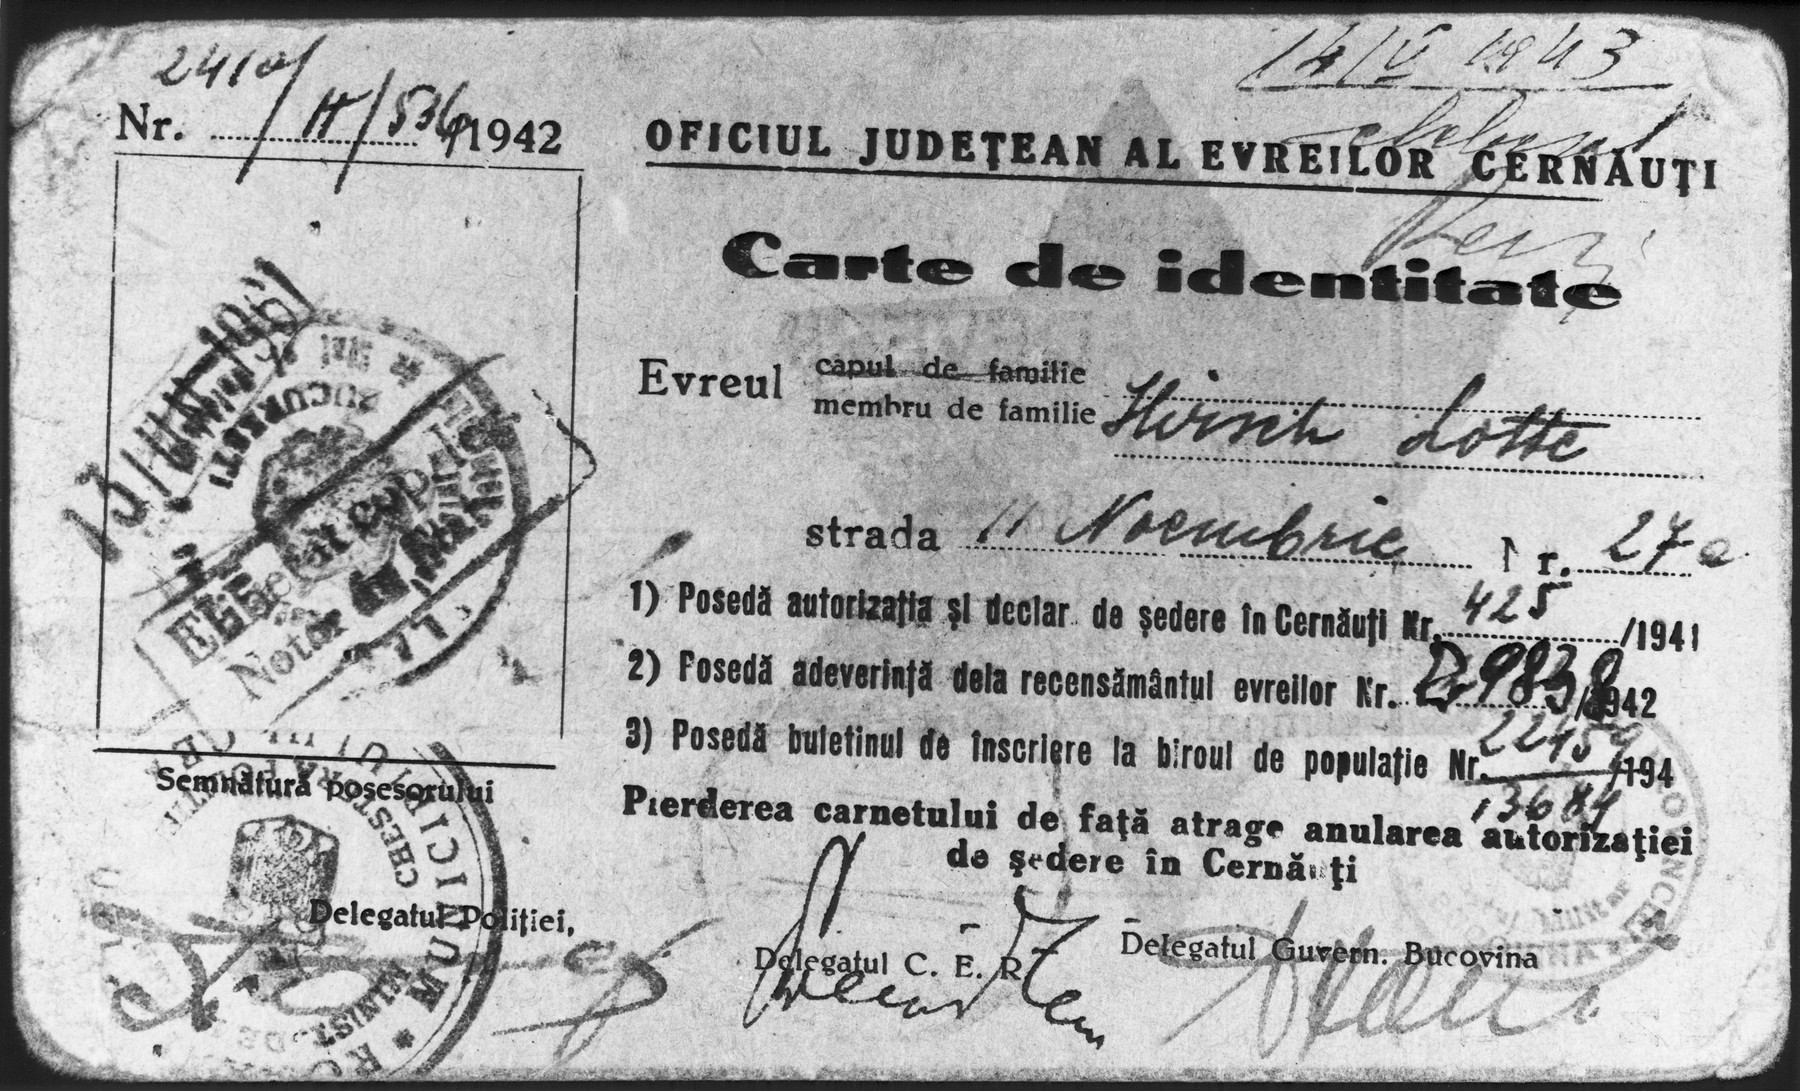 Identification card issued to Lotte Gottfried Hirsch by the Czernowitz County Office of Jewish Affairs,  authorizing her to remain in Czernowitz.